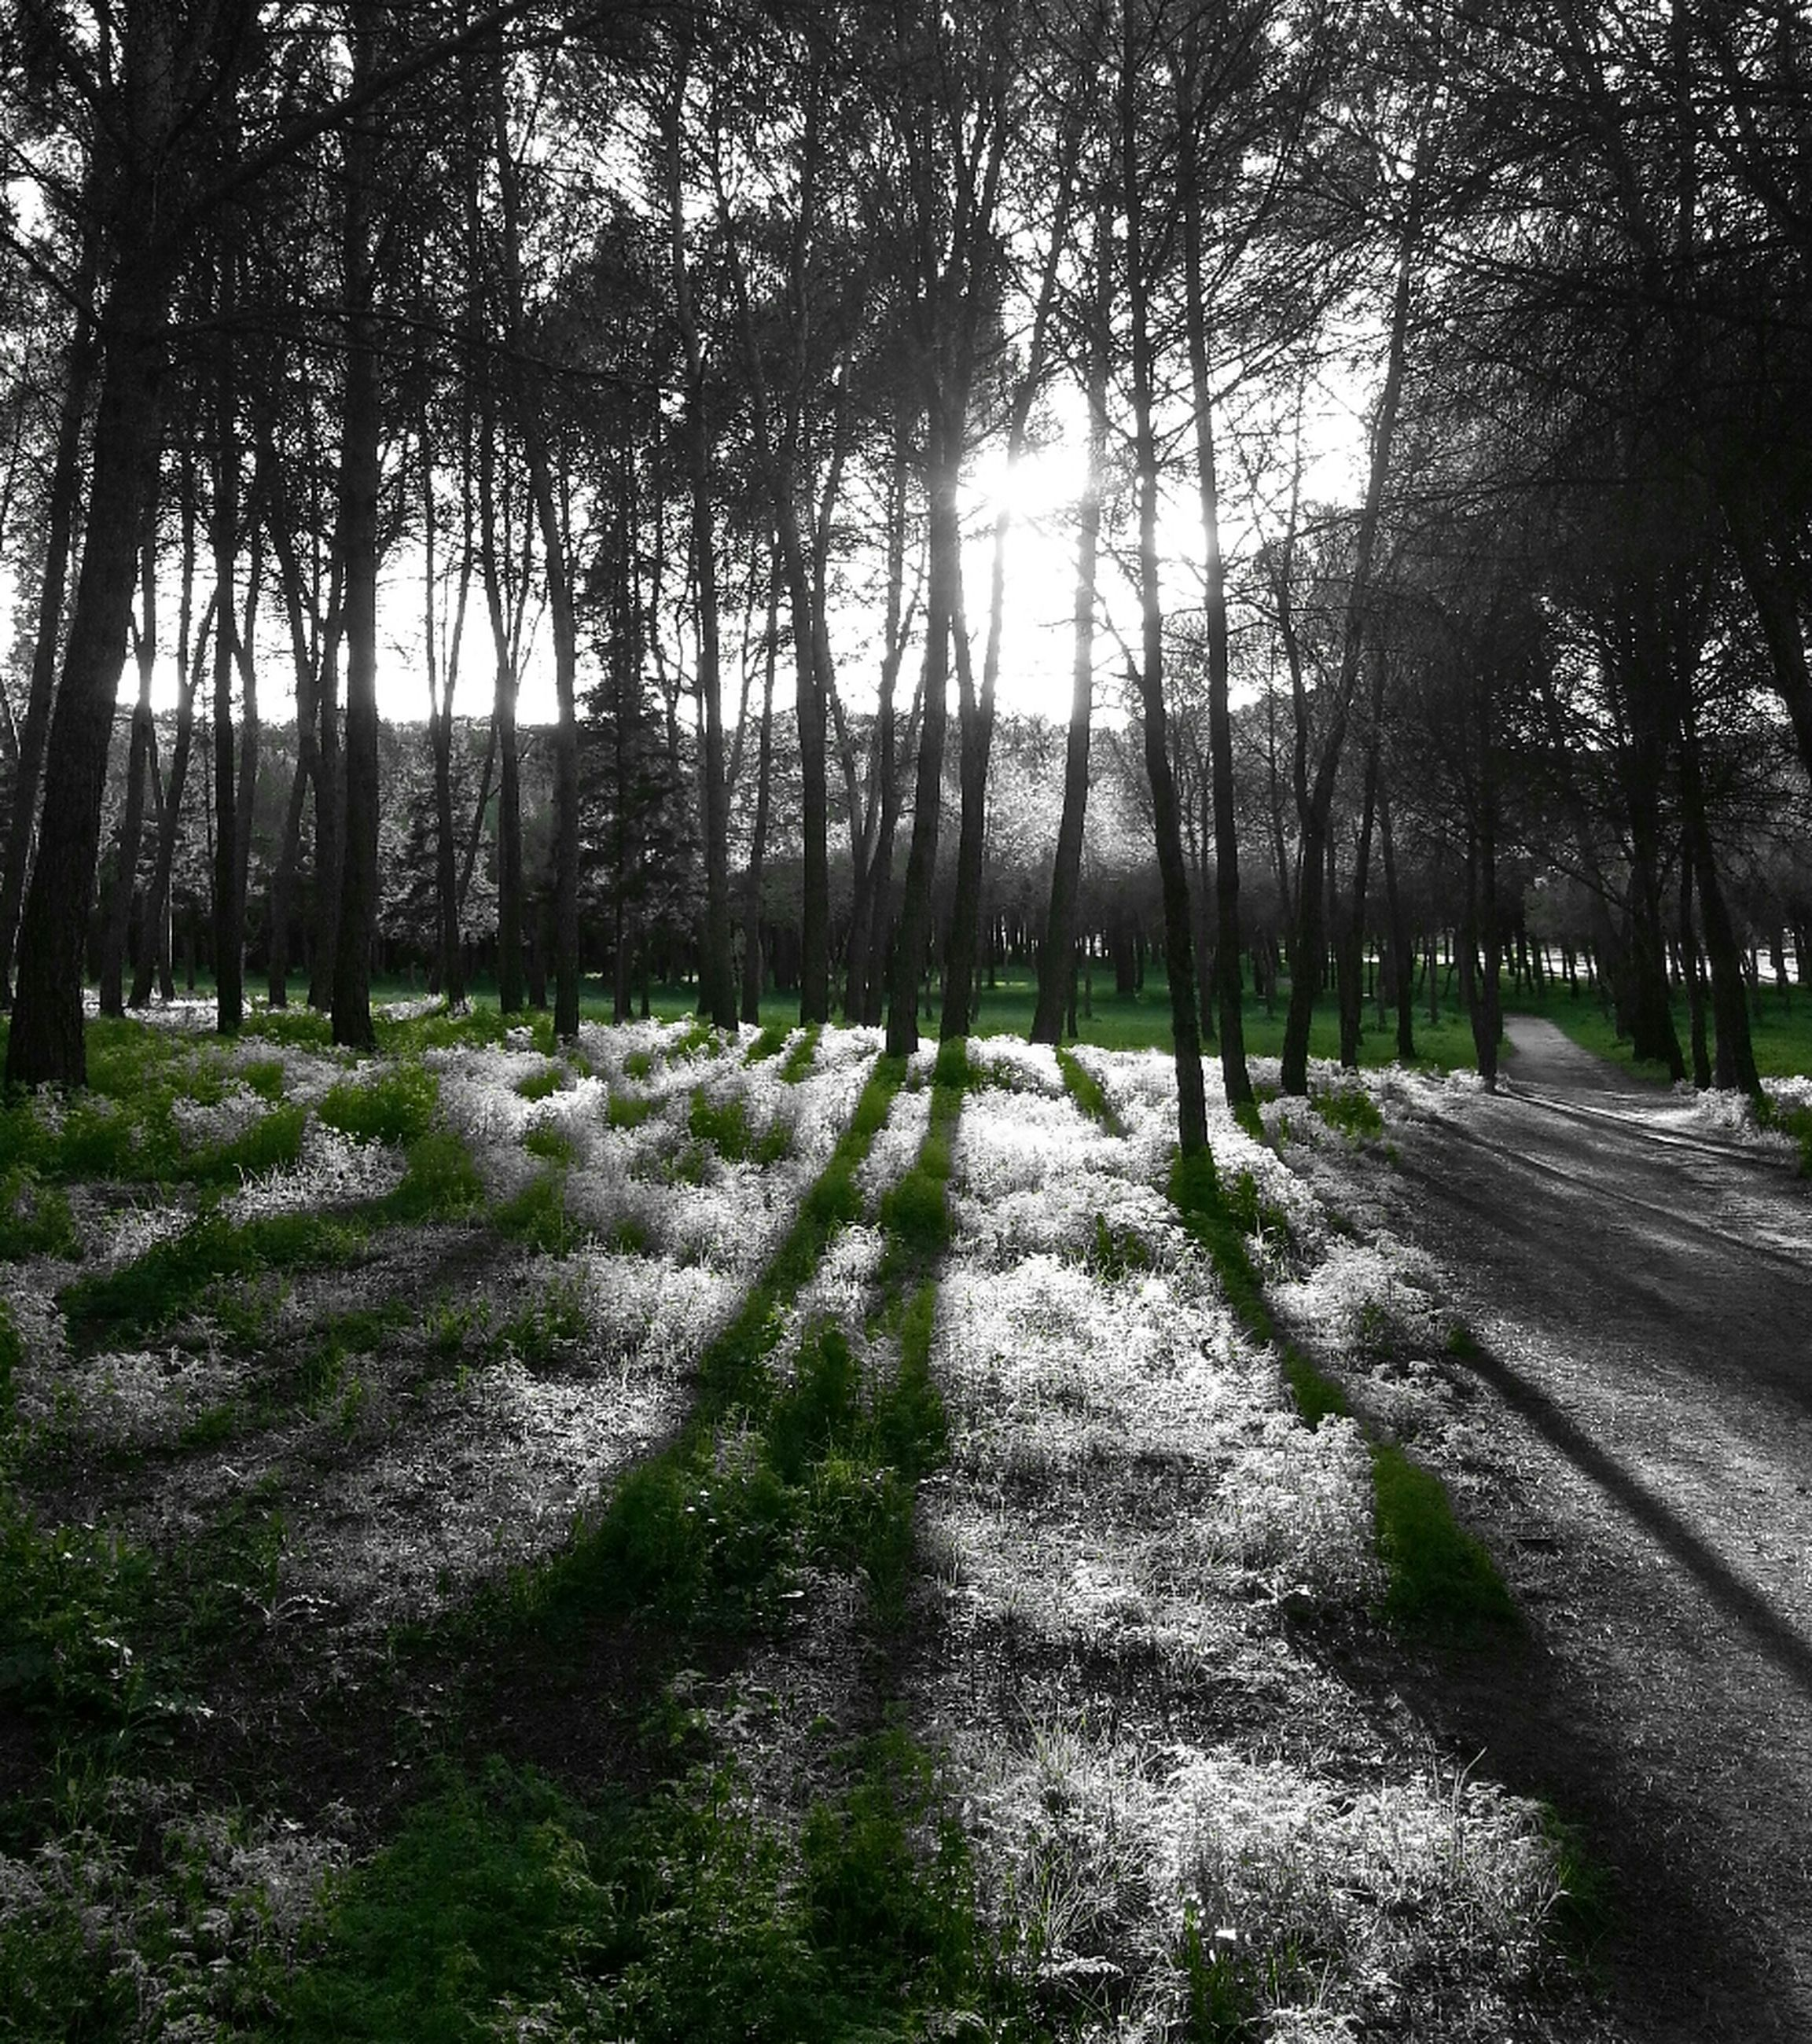 tree, the way forward, diminishing perspective, sunlight, tree trunk, vanishing point, treelined, growth, nature, tranquility, road, footpath, transportation, shadow, tranquil scene, dirt road, day, park - man made space, outdoors, sunbeam